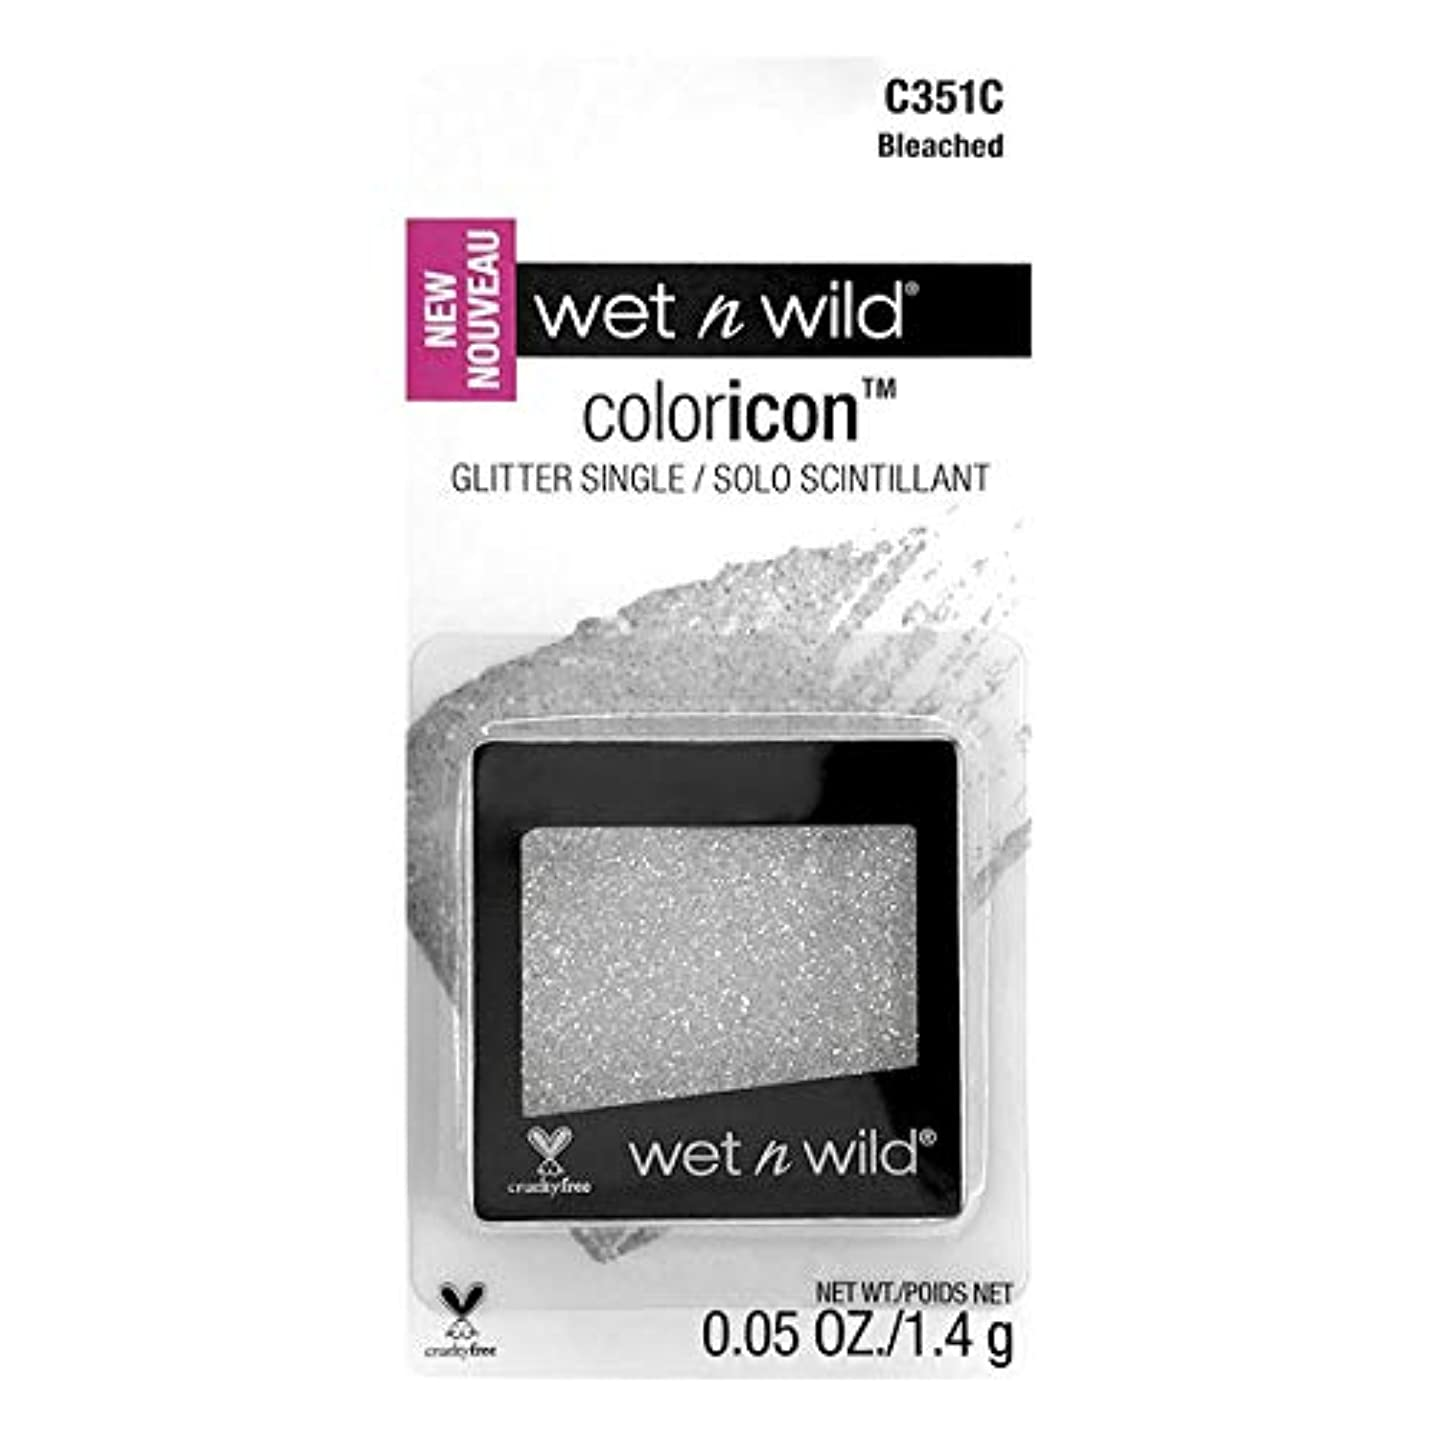 疲れた免疫する失礼なWET N WILD Color Icon Glitter Single - Bleached (CARDED) (3 Pack) (並行輸入品)